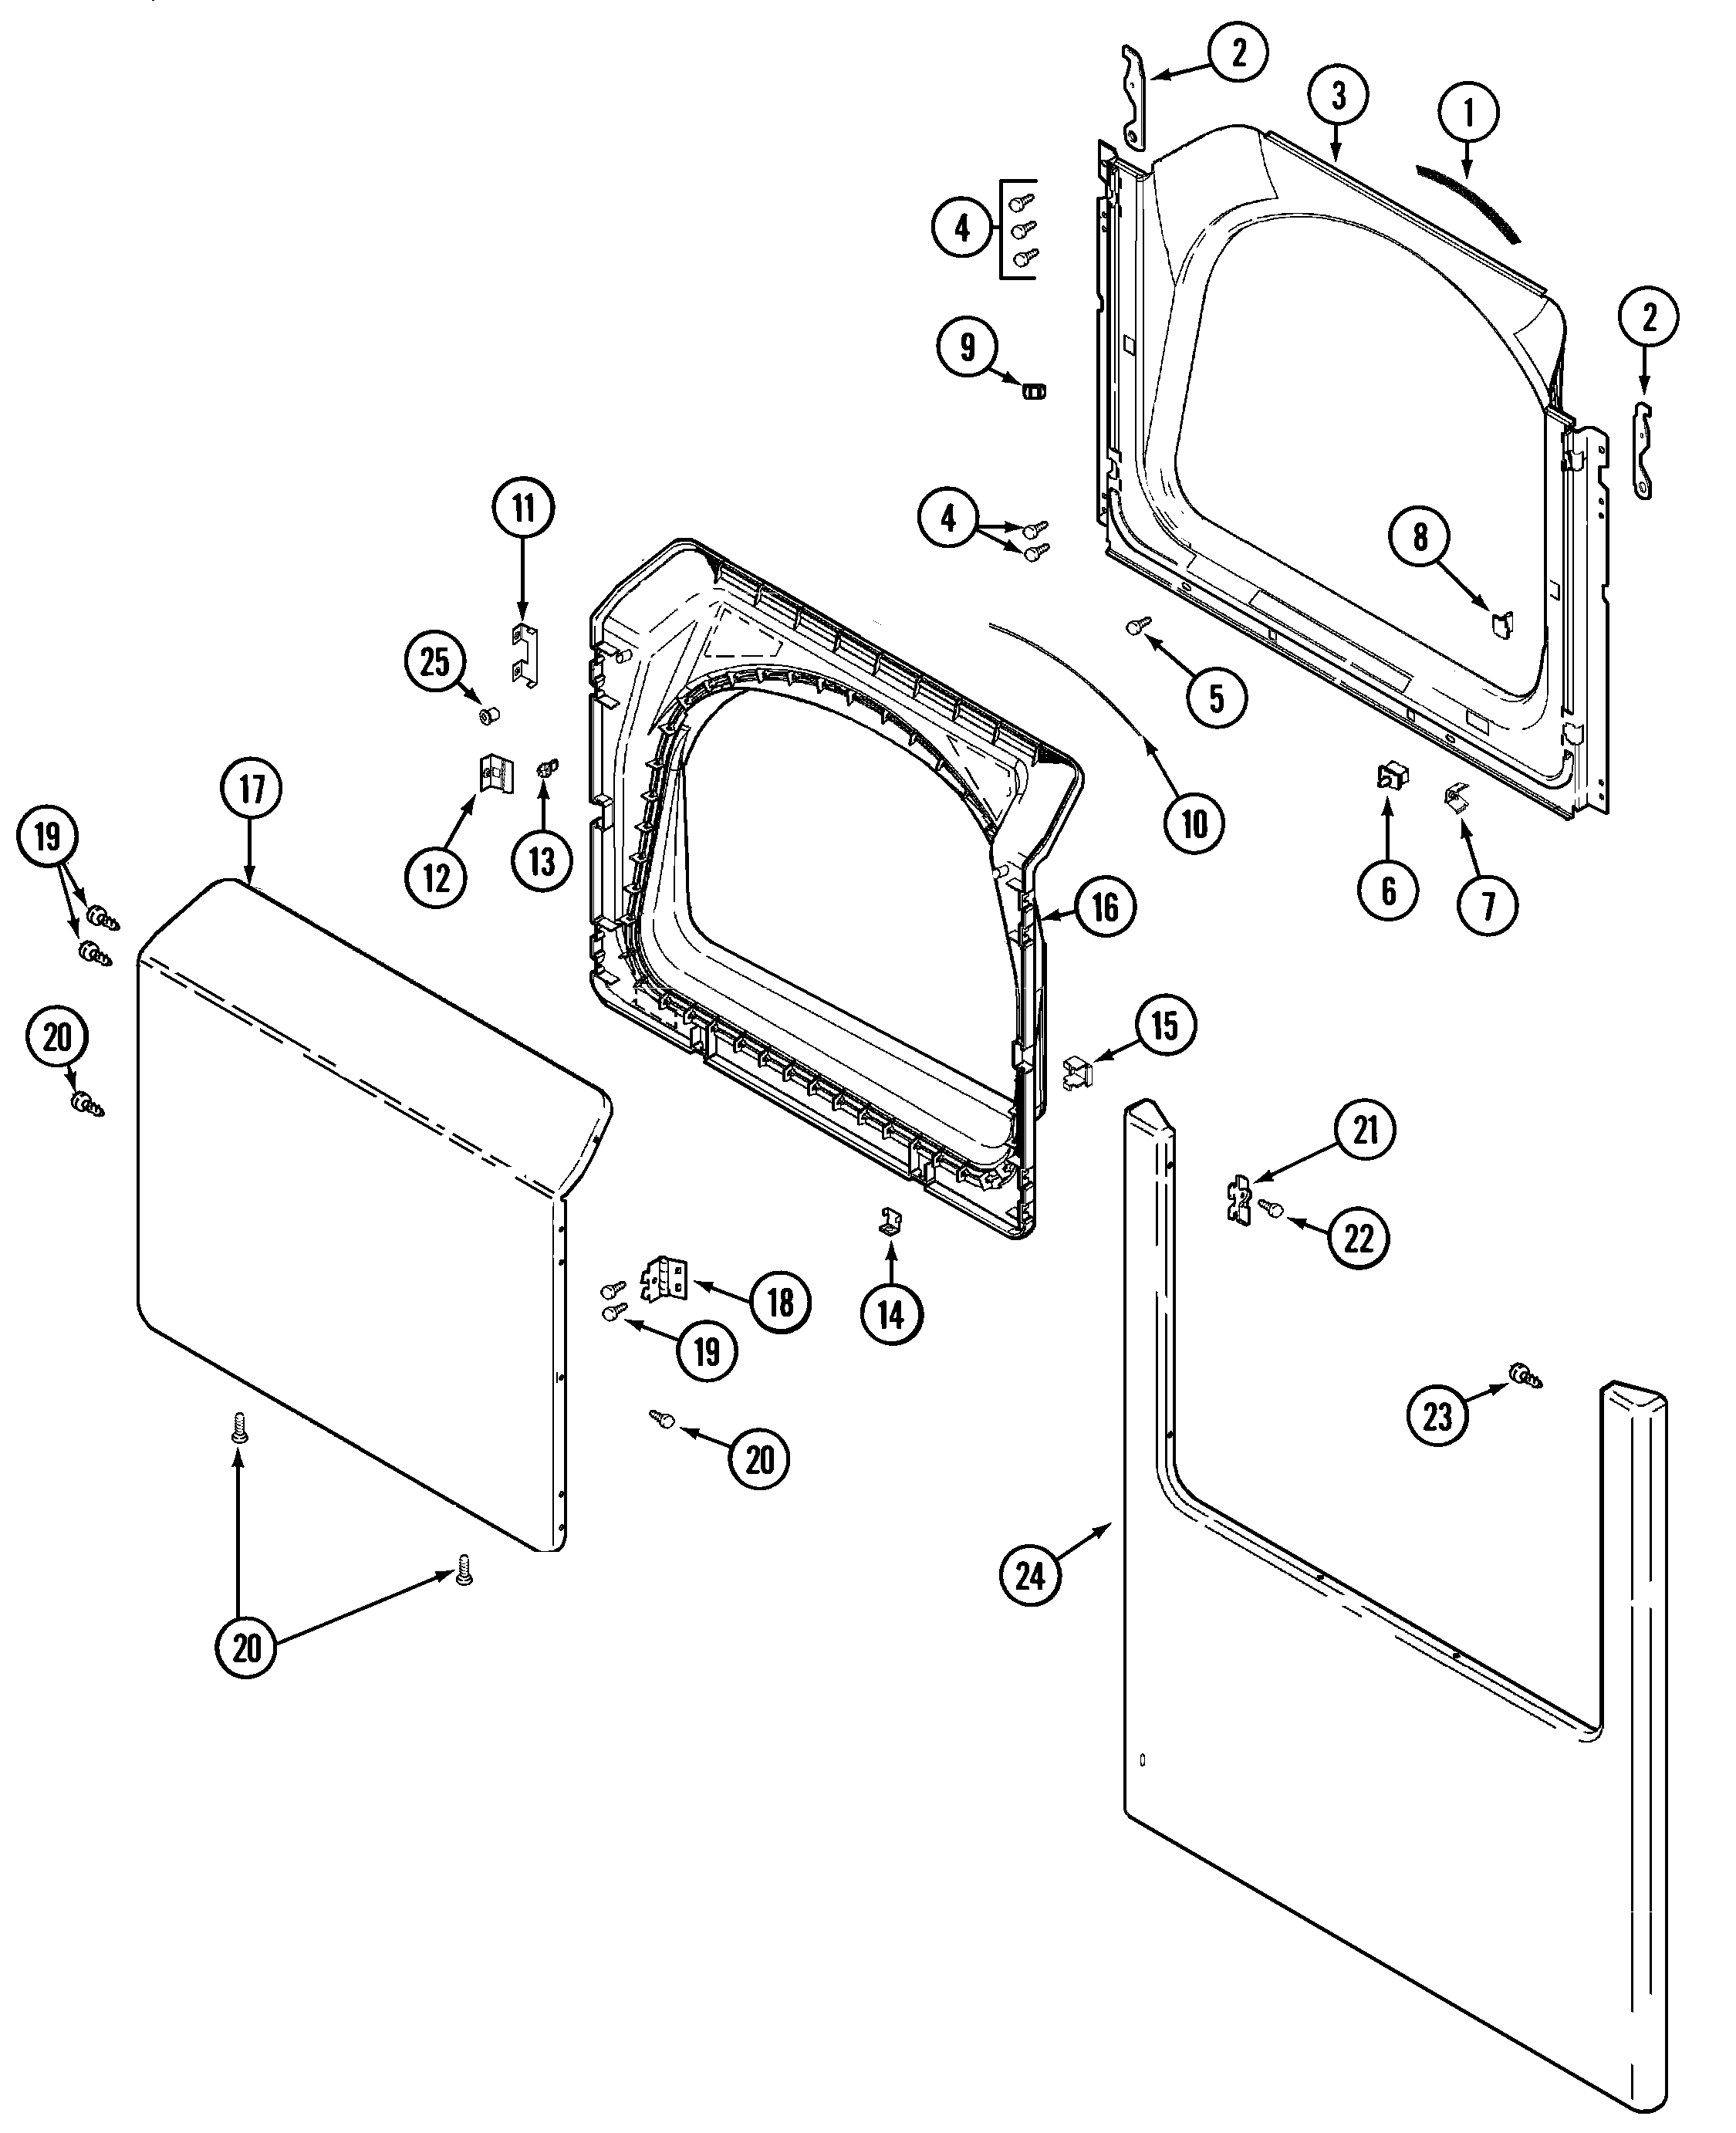 medium resolution of looking for maytag model mdg5500awq dryer repair replacement parts cabinet diagram and parts list for maytag dryerparts model